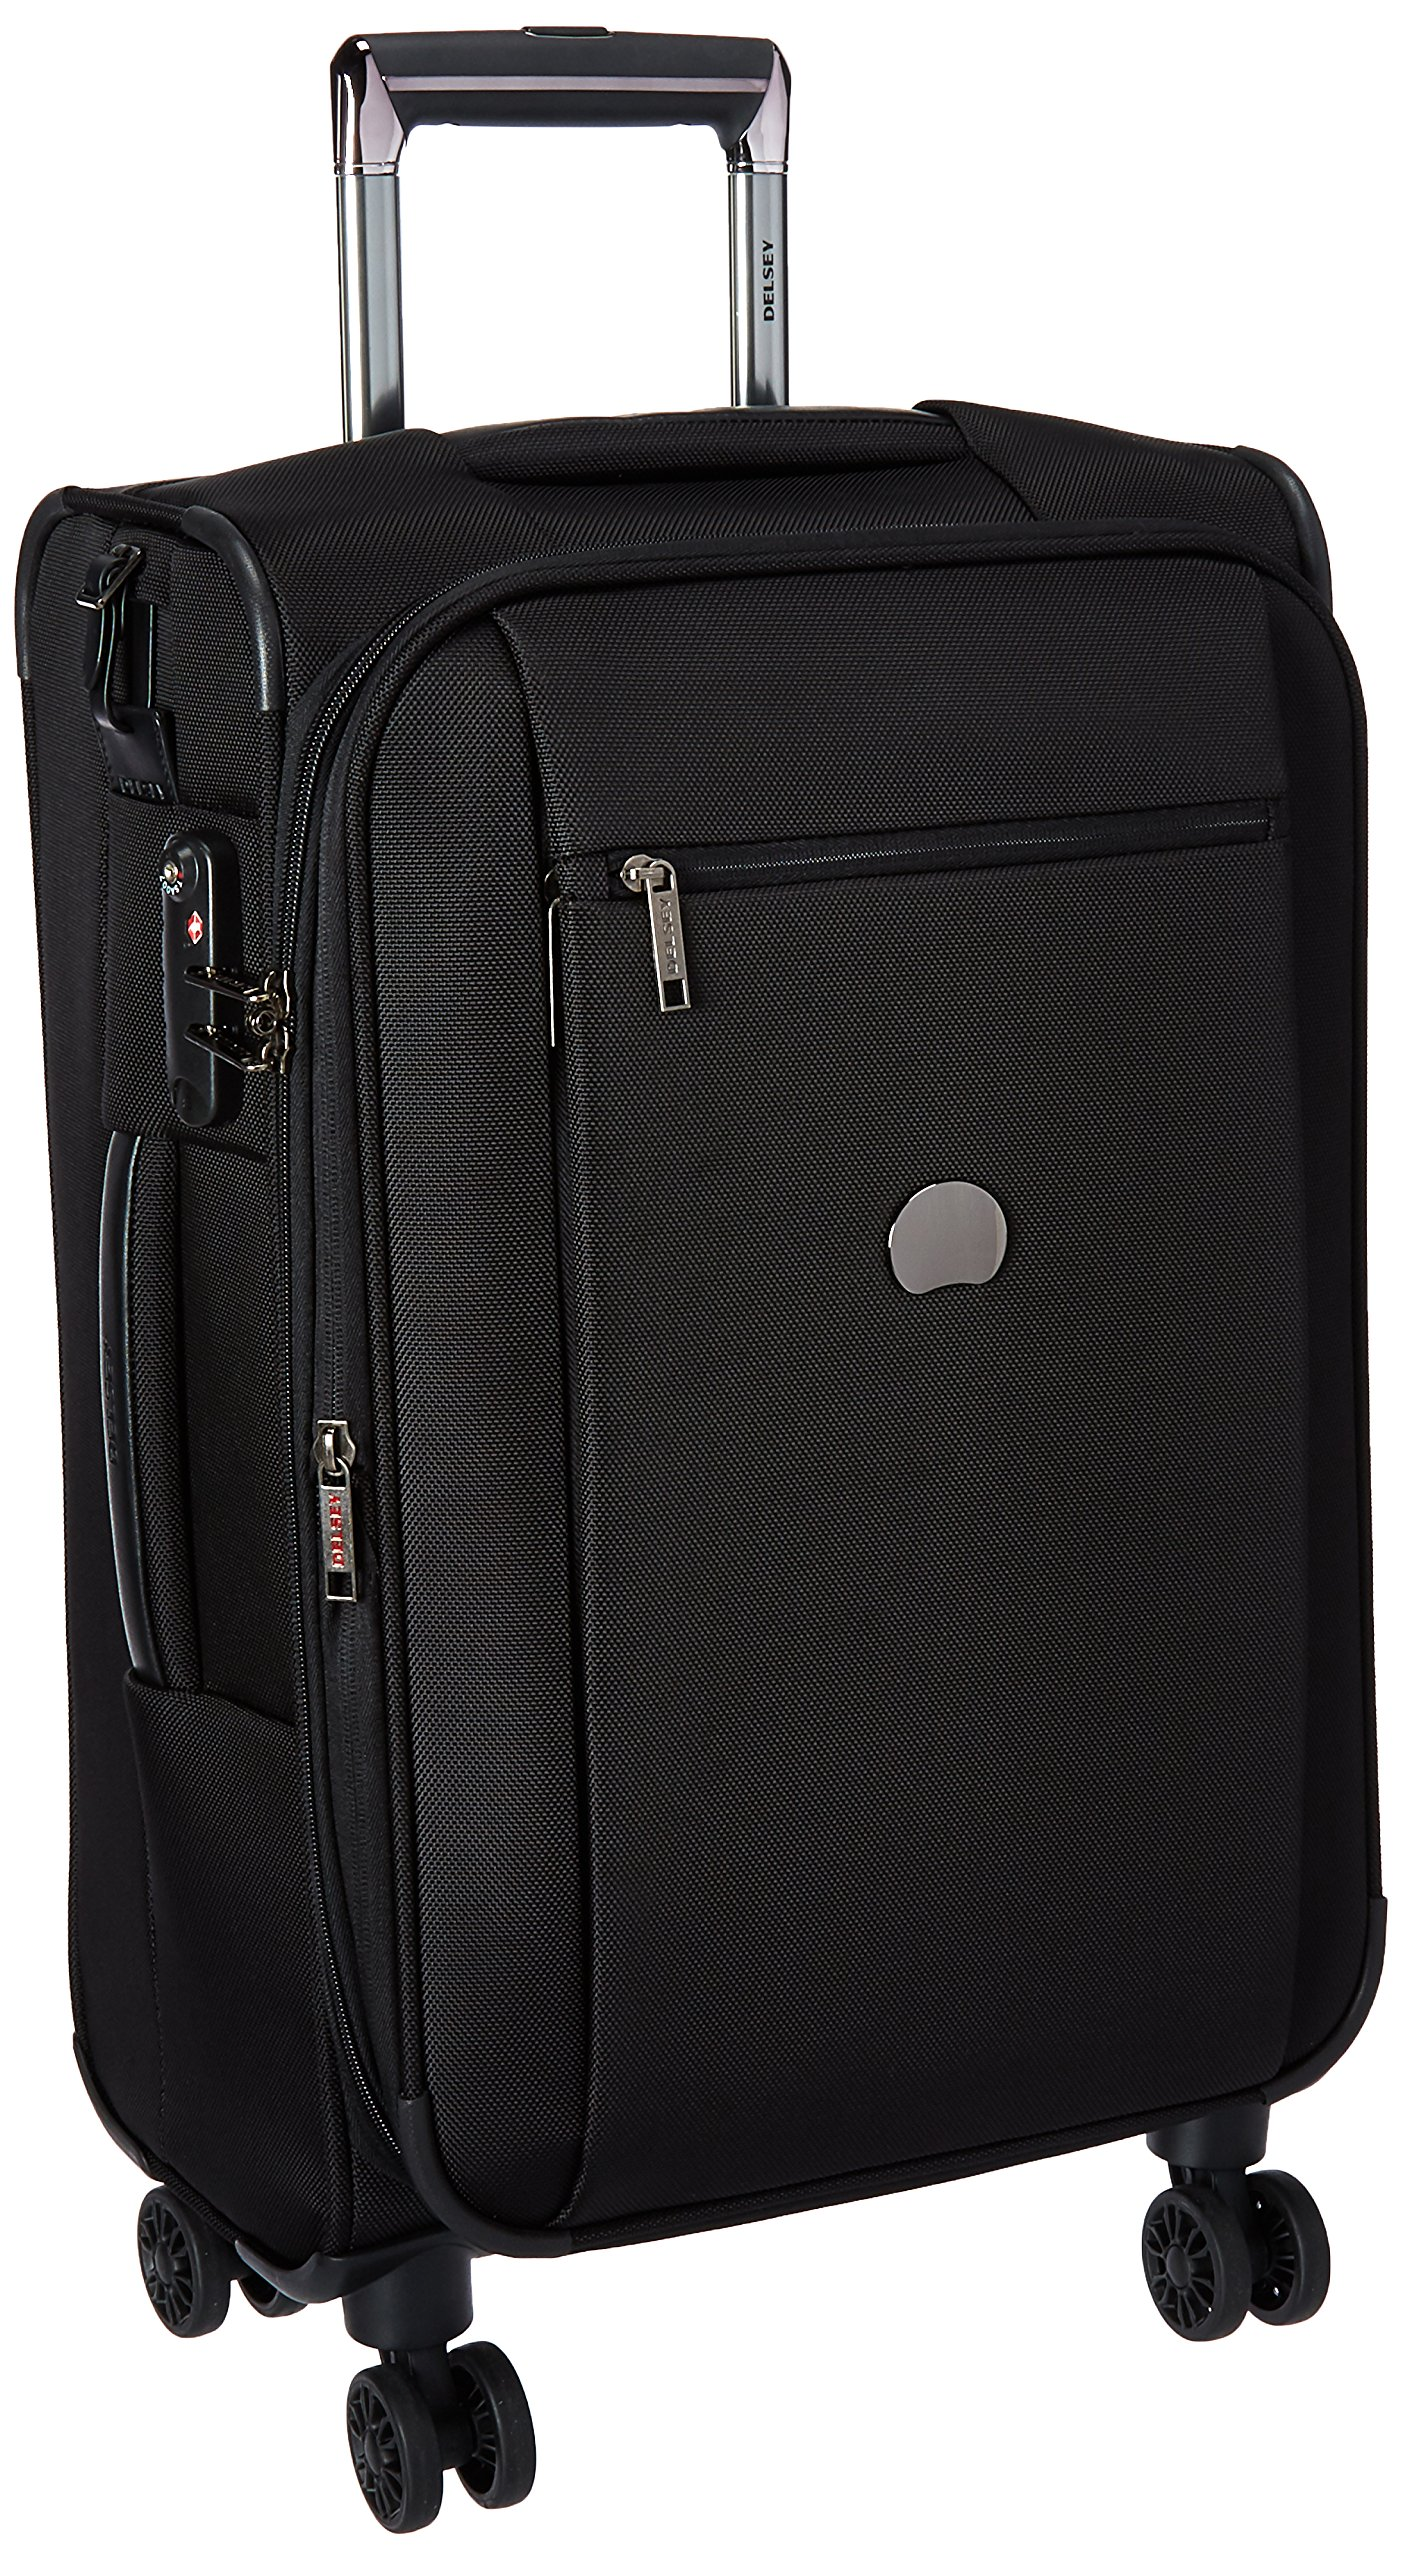 Delsey Luggage Montmartre 4 Wheel 21 Carry Exp Softside Lug, Black by DELSEY Paris